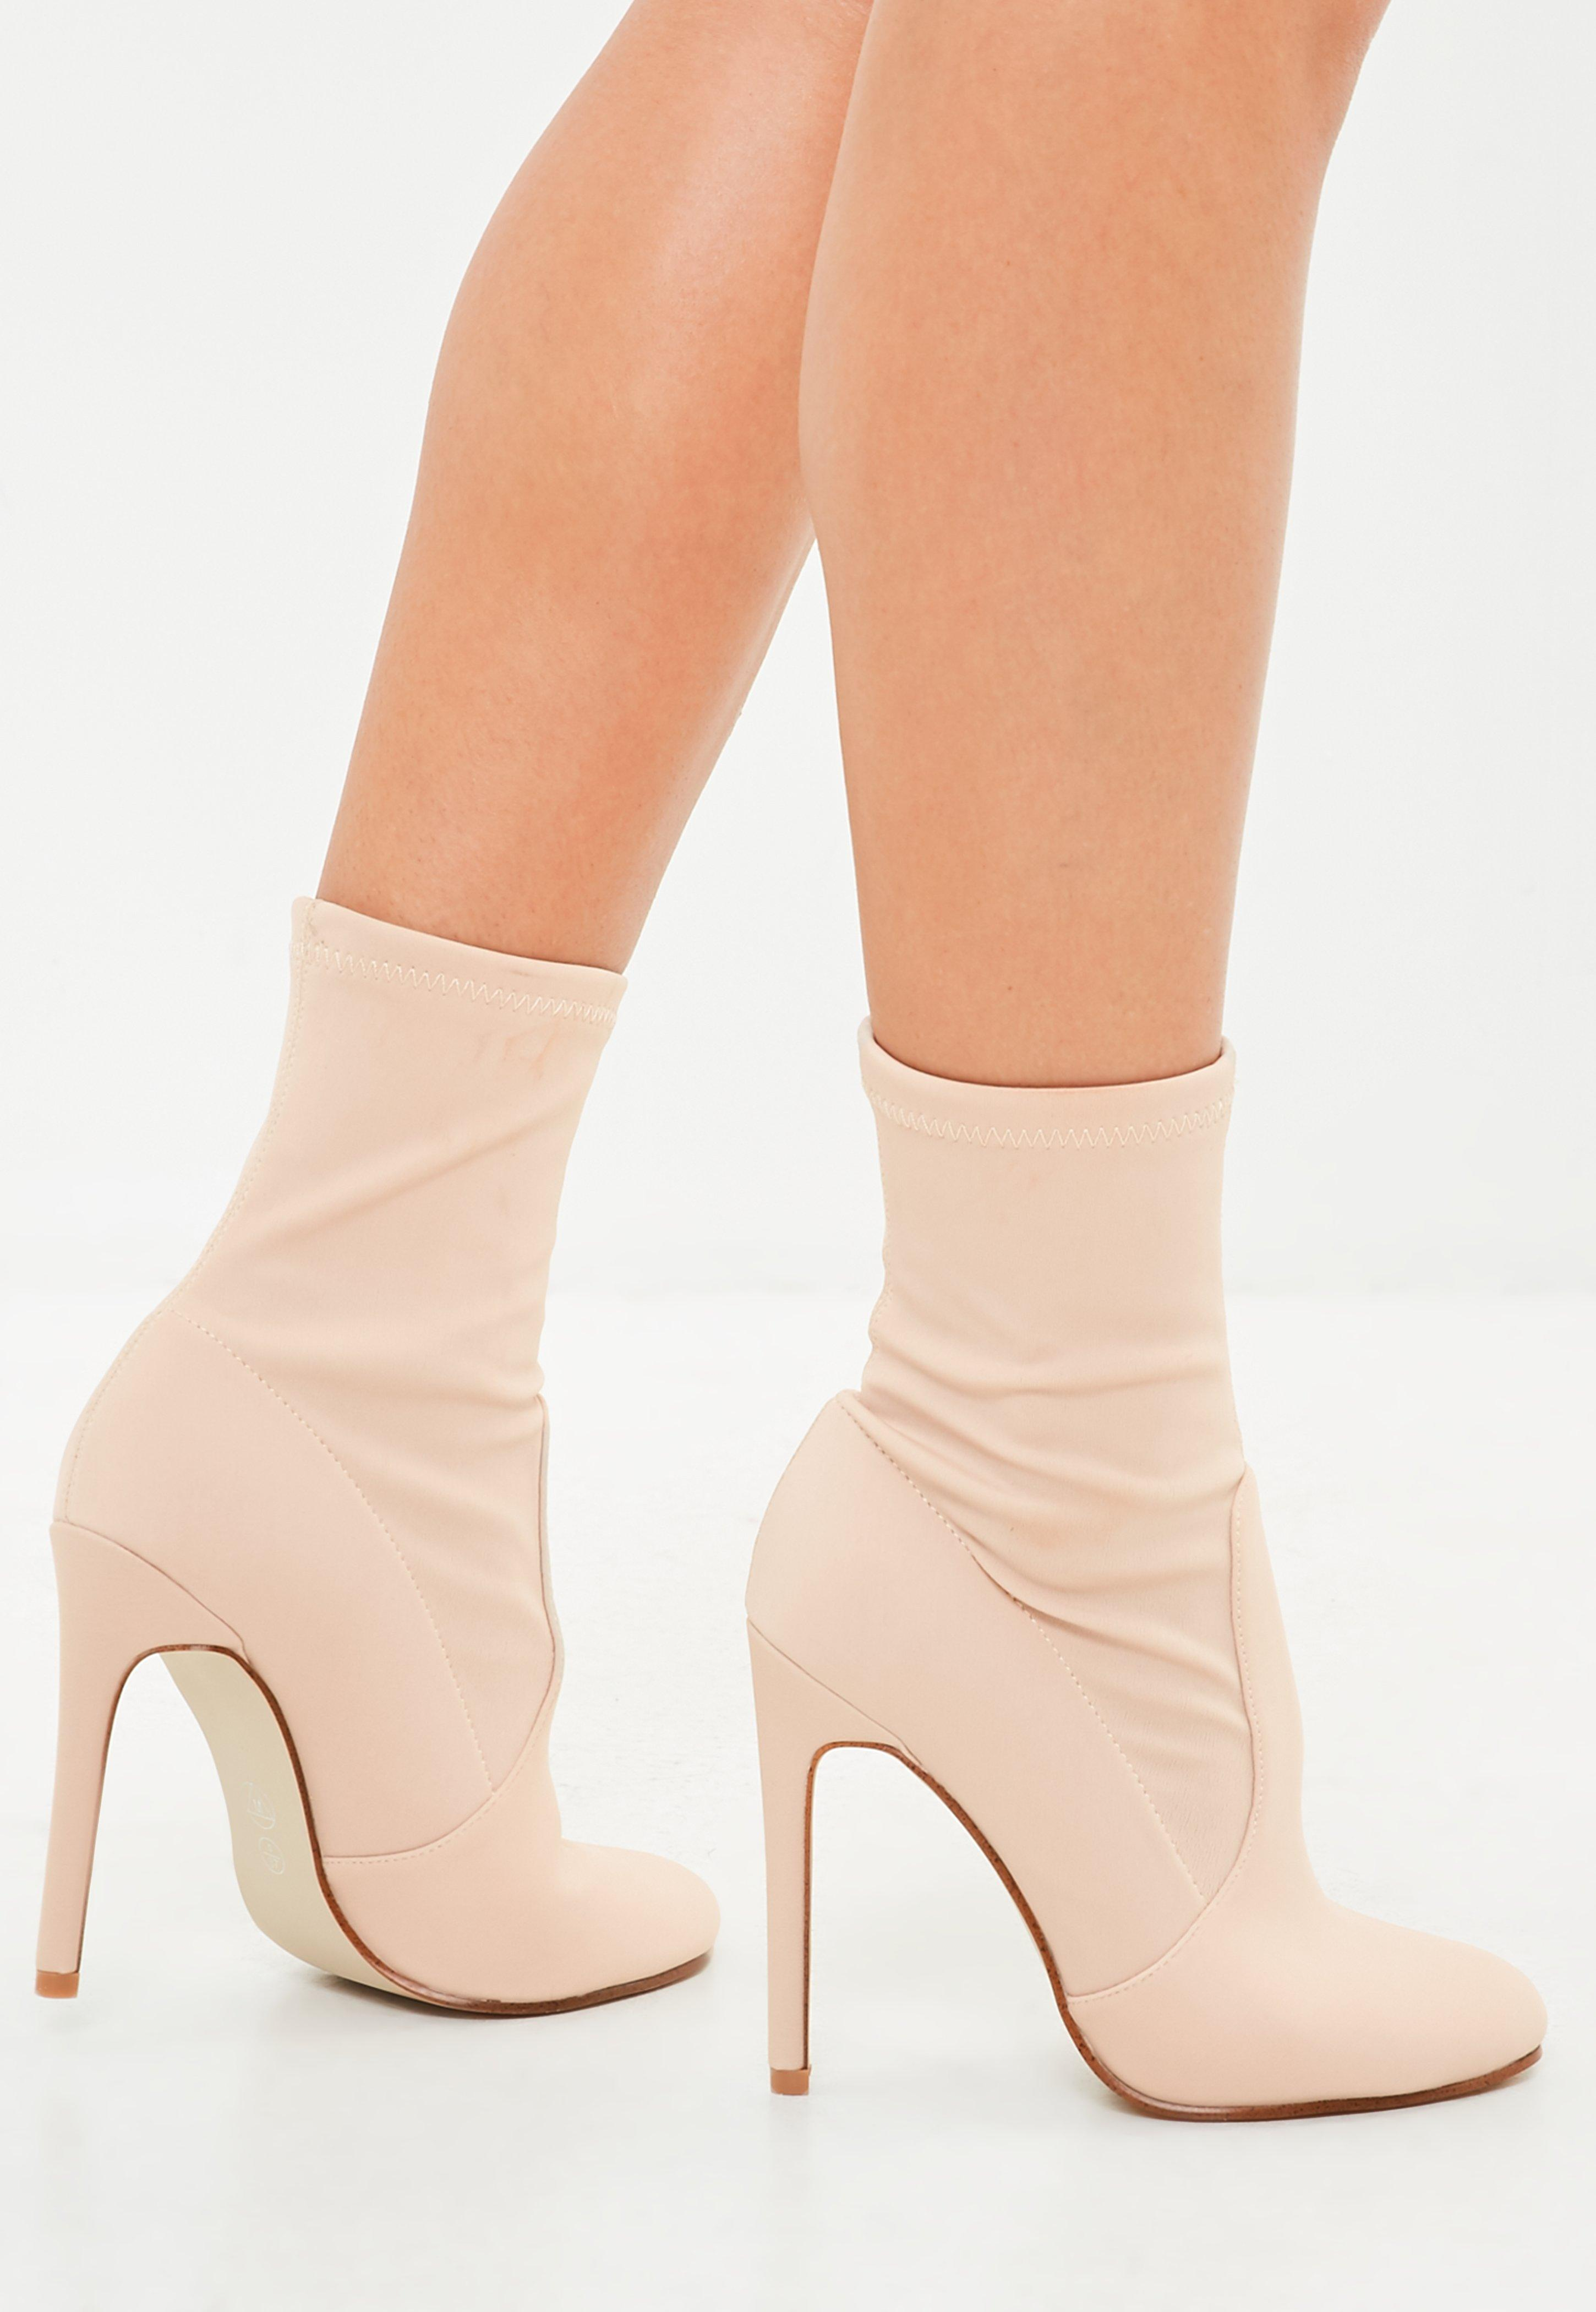 nude round toe stiletto heel boots | missguided